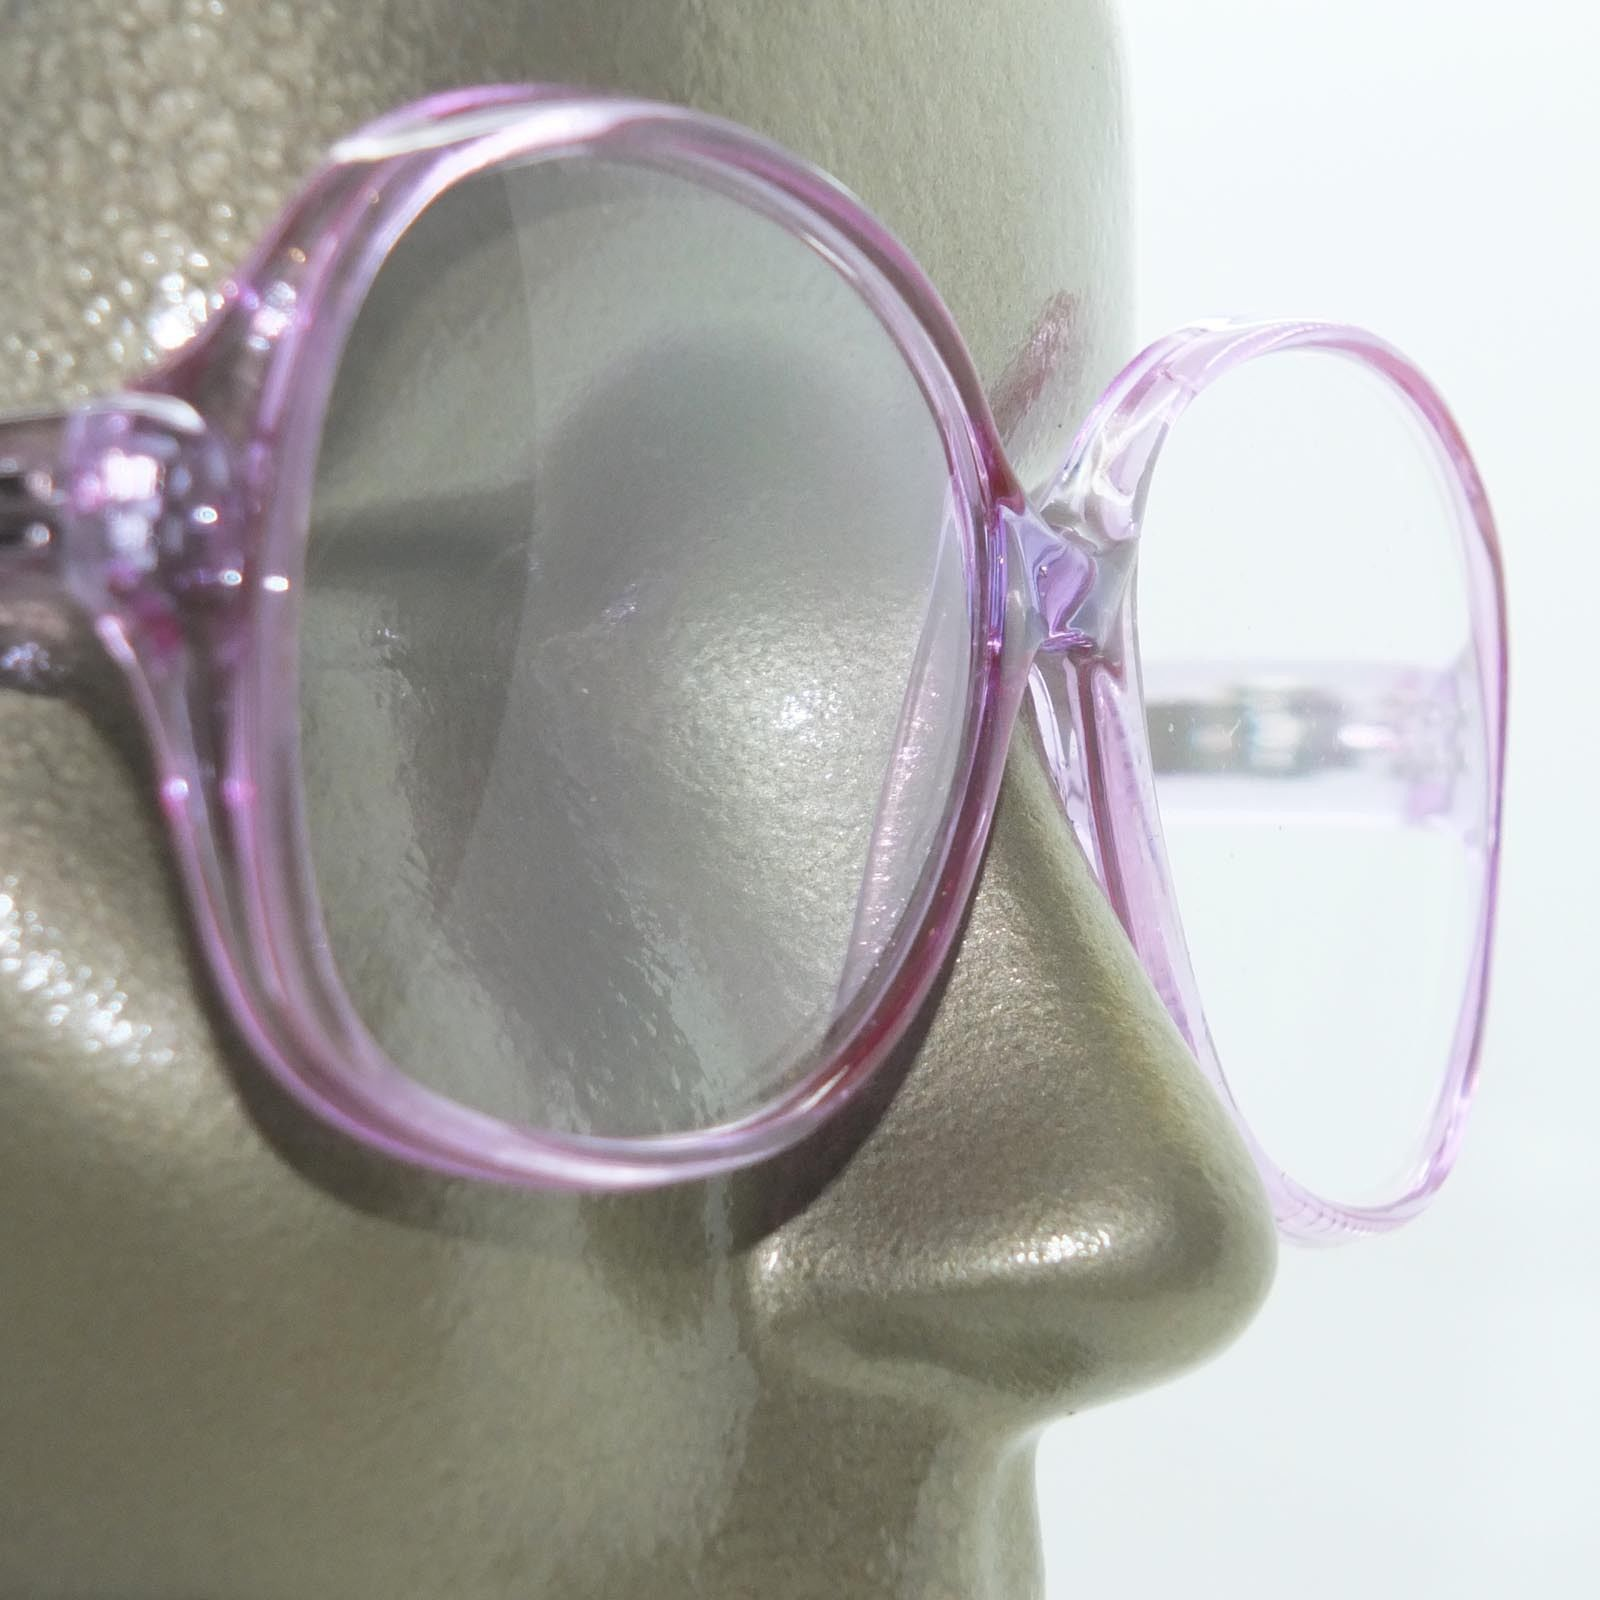 Primary image for Reading Glasses Violet Large Oversize Grand Frame Acrylic Classic +3.00 Strength